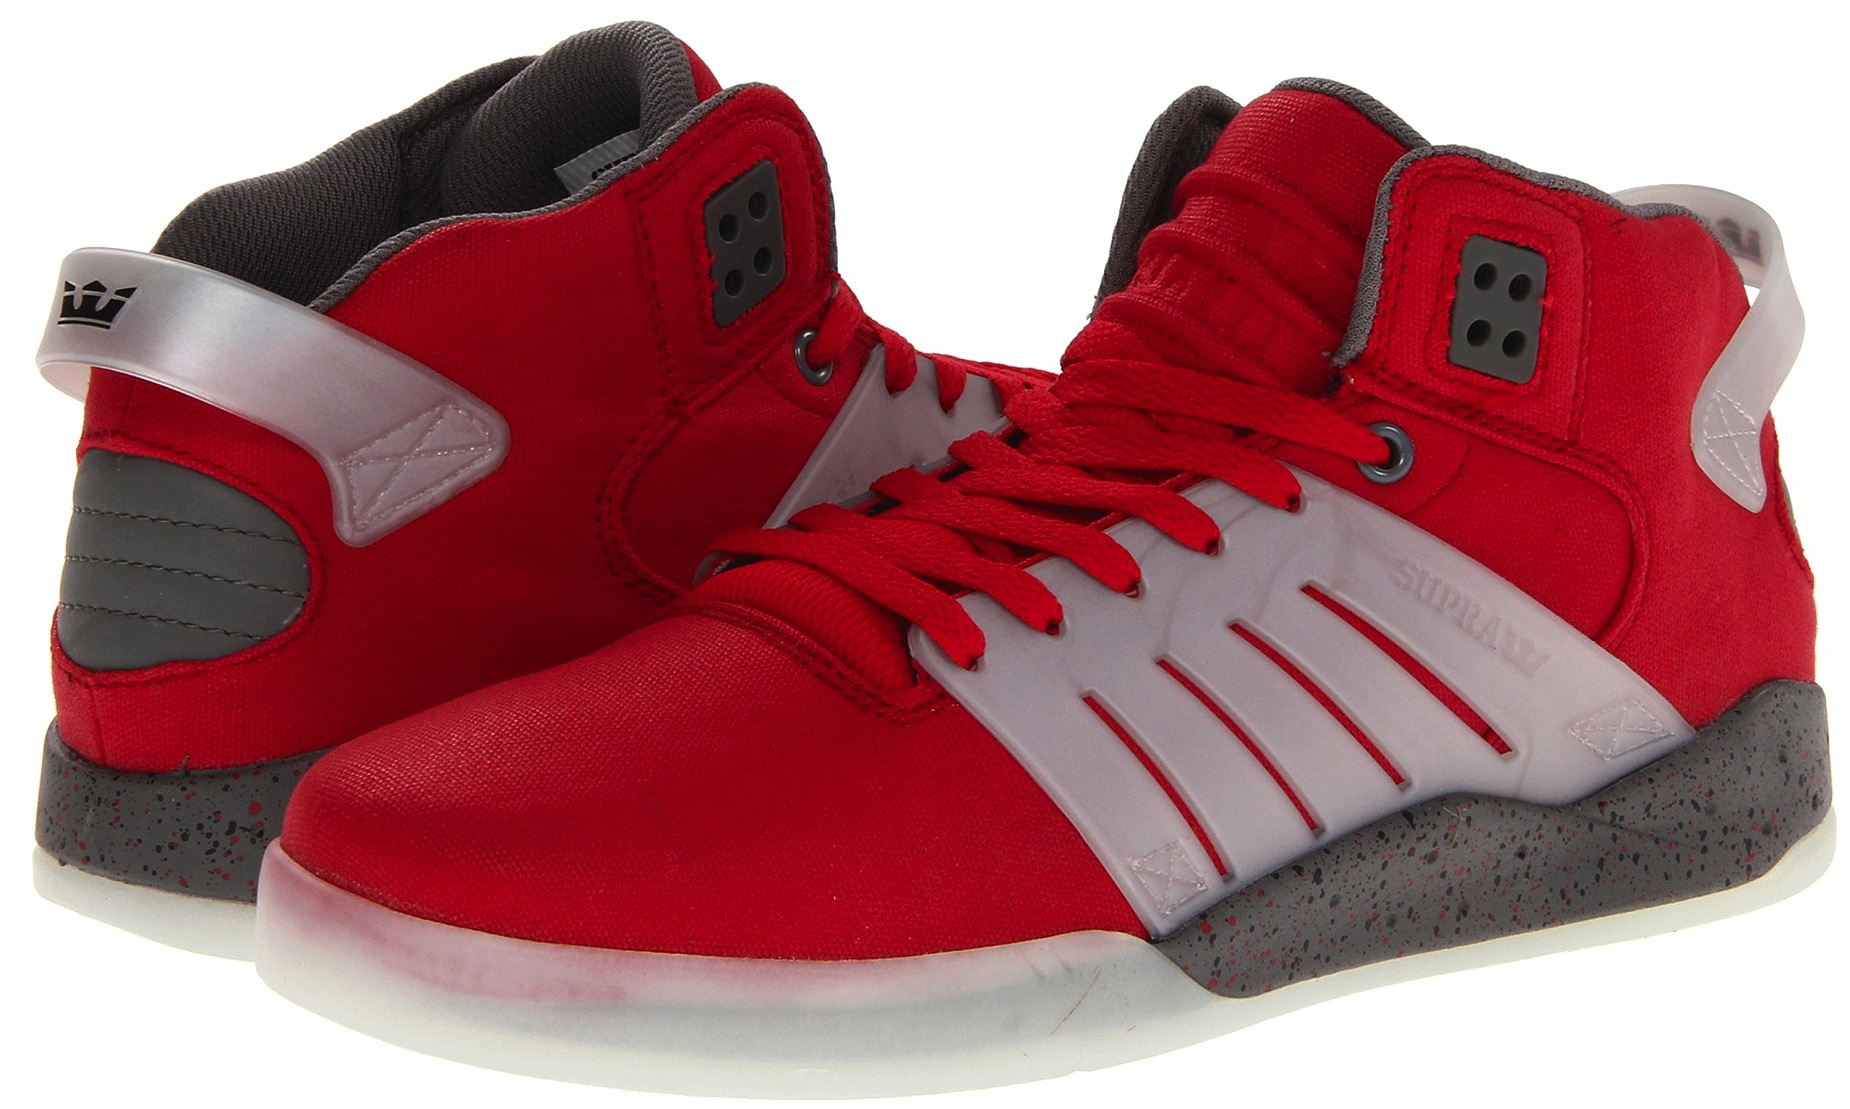 Supra Skytop III Vegan Skateboard shoes